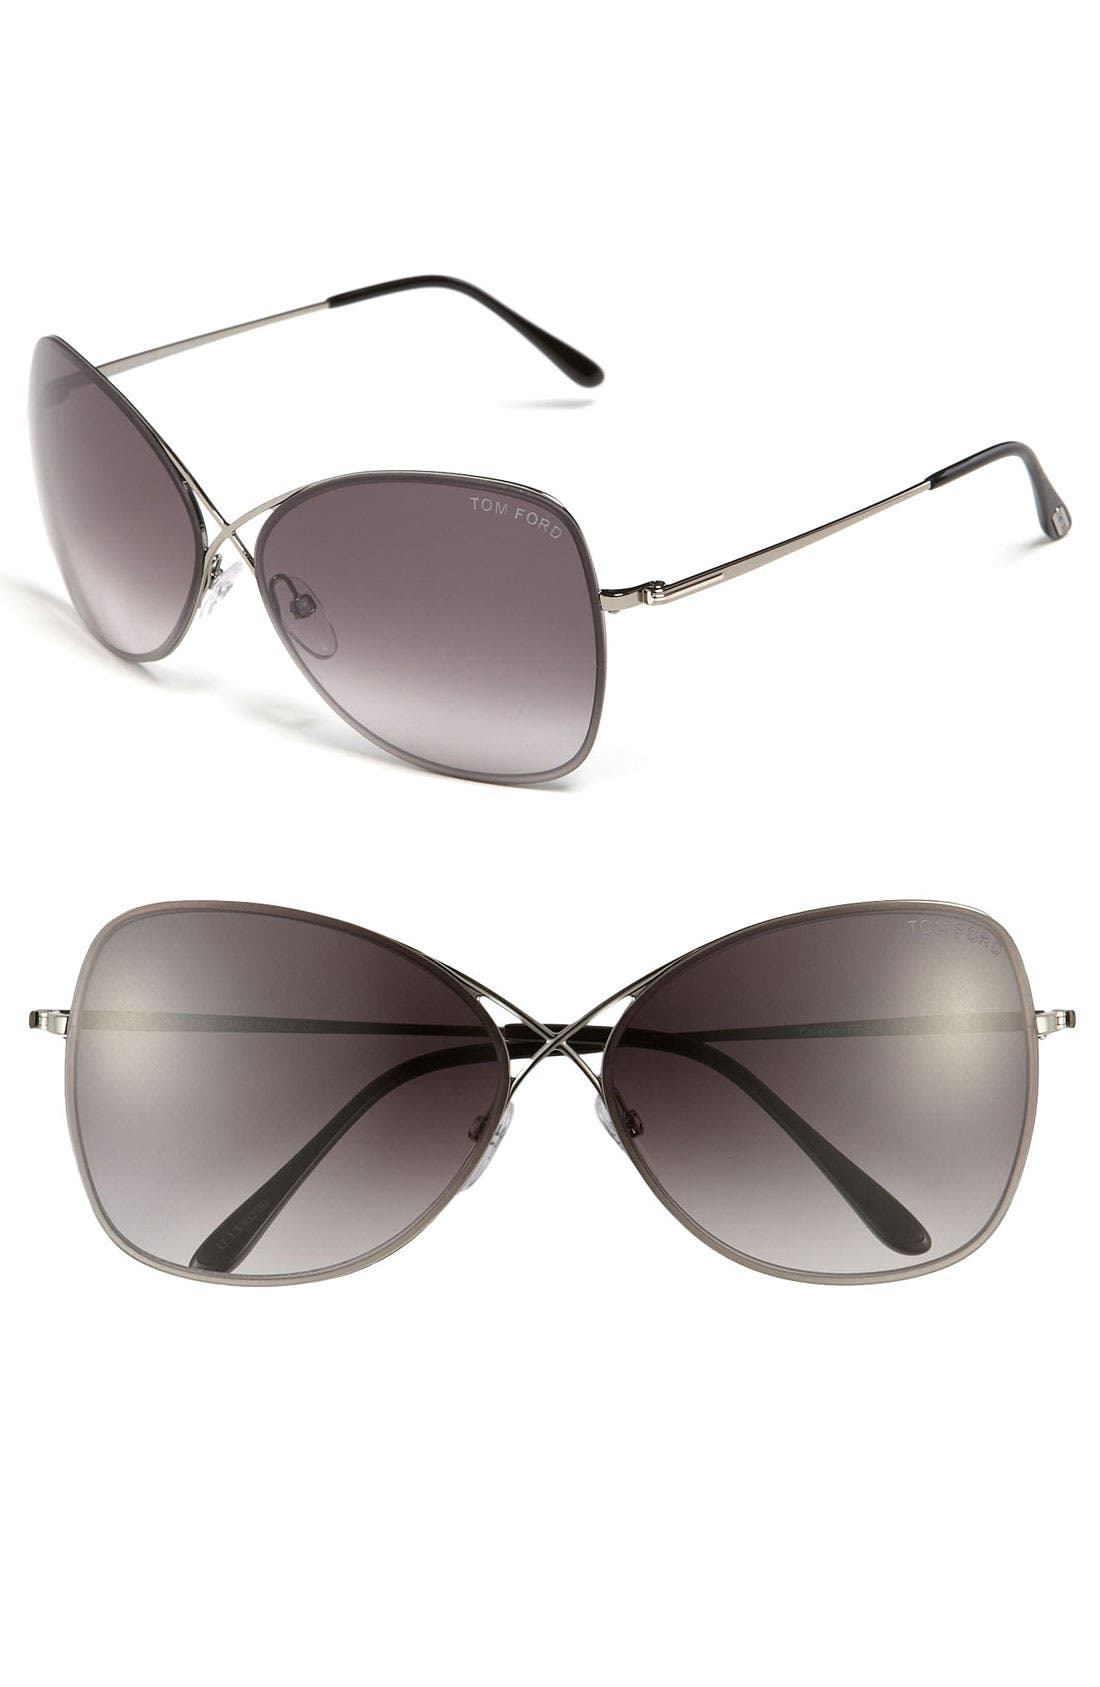 'Colette' 63mm Oversized Sunglasses,                             Main thumbnail 1, color,                             Shiny Gunmetal/ Grey Gradient